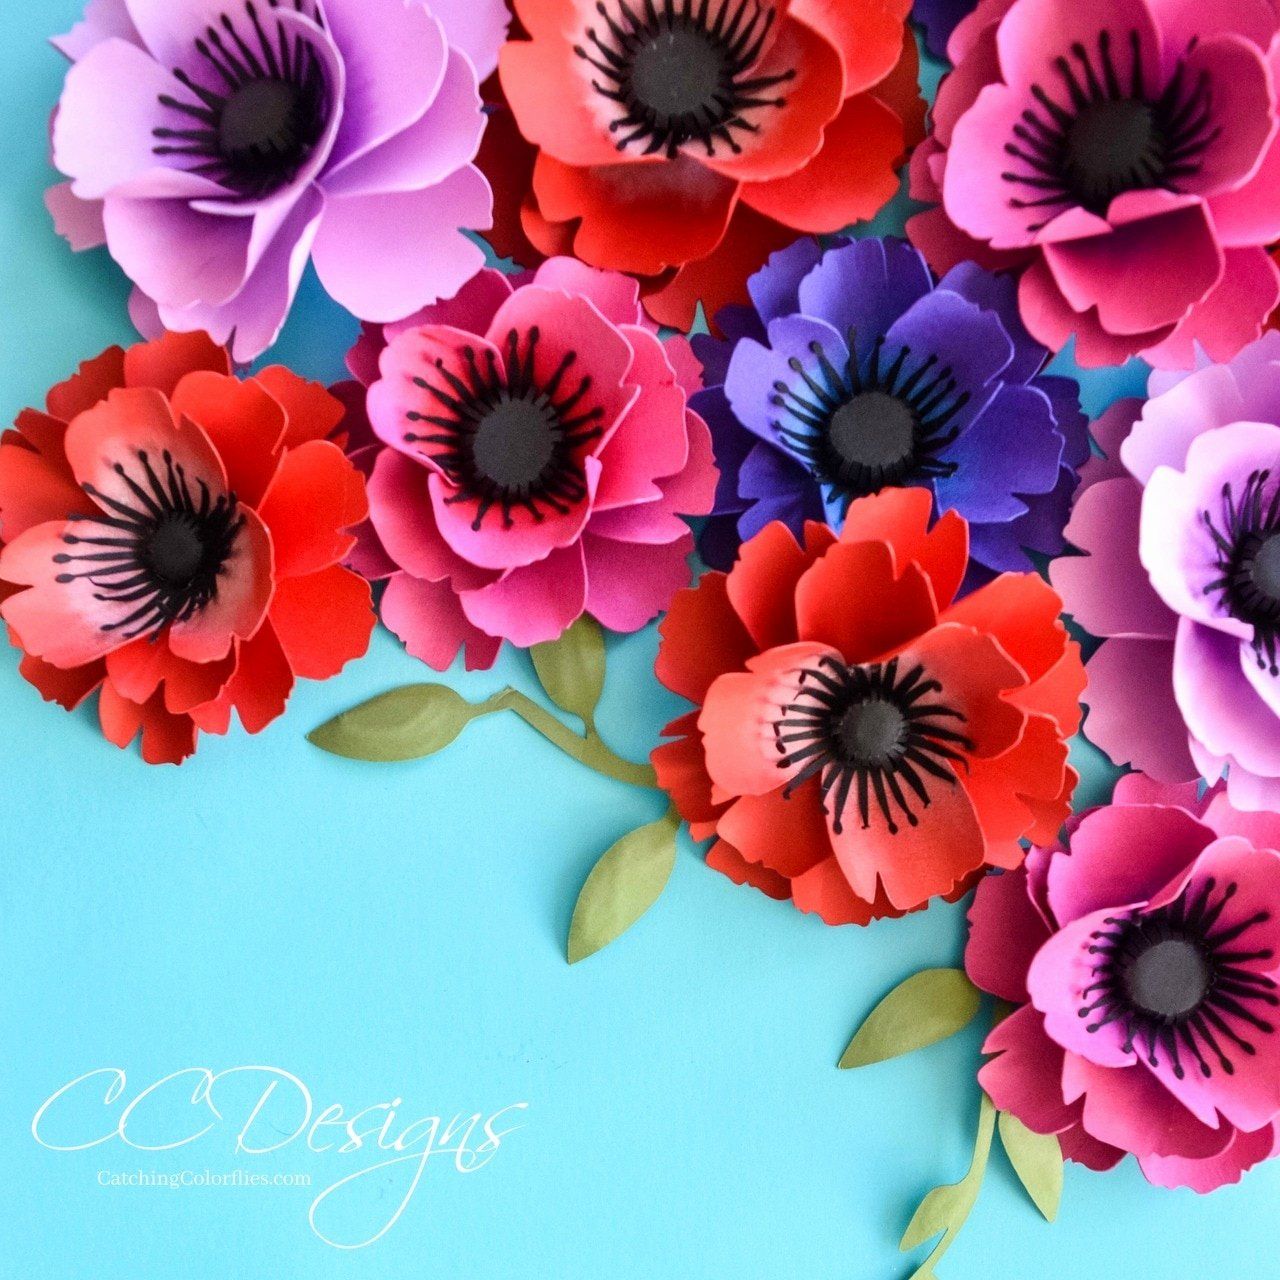 Small Paper Flower Templates Luxury Small Poppy Paper Flower Template Catching Colorflies